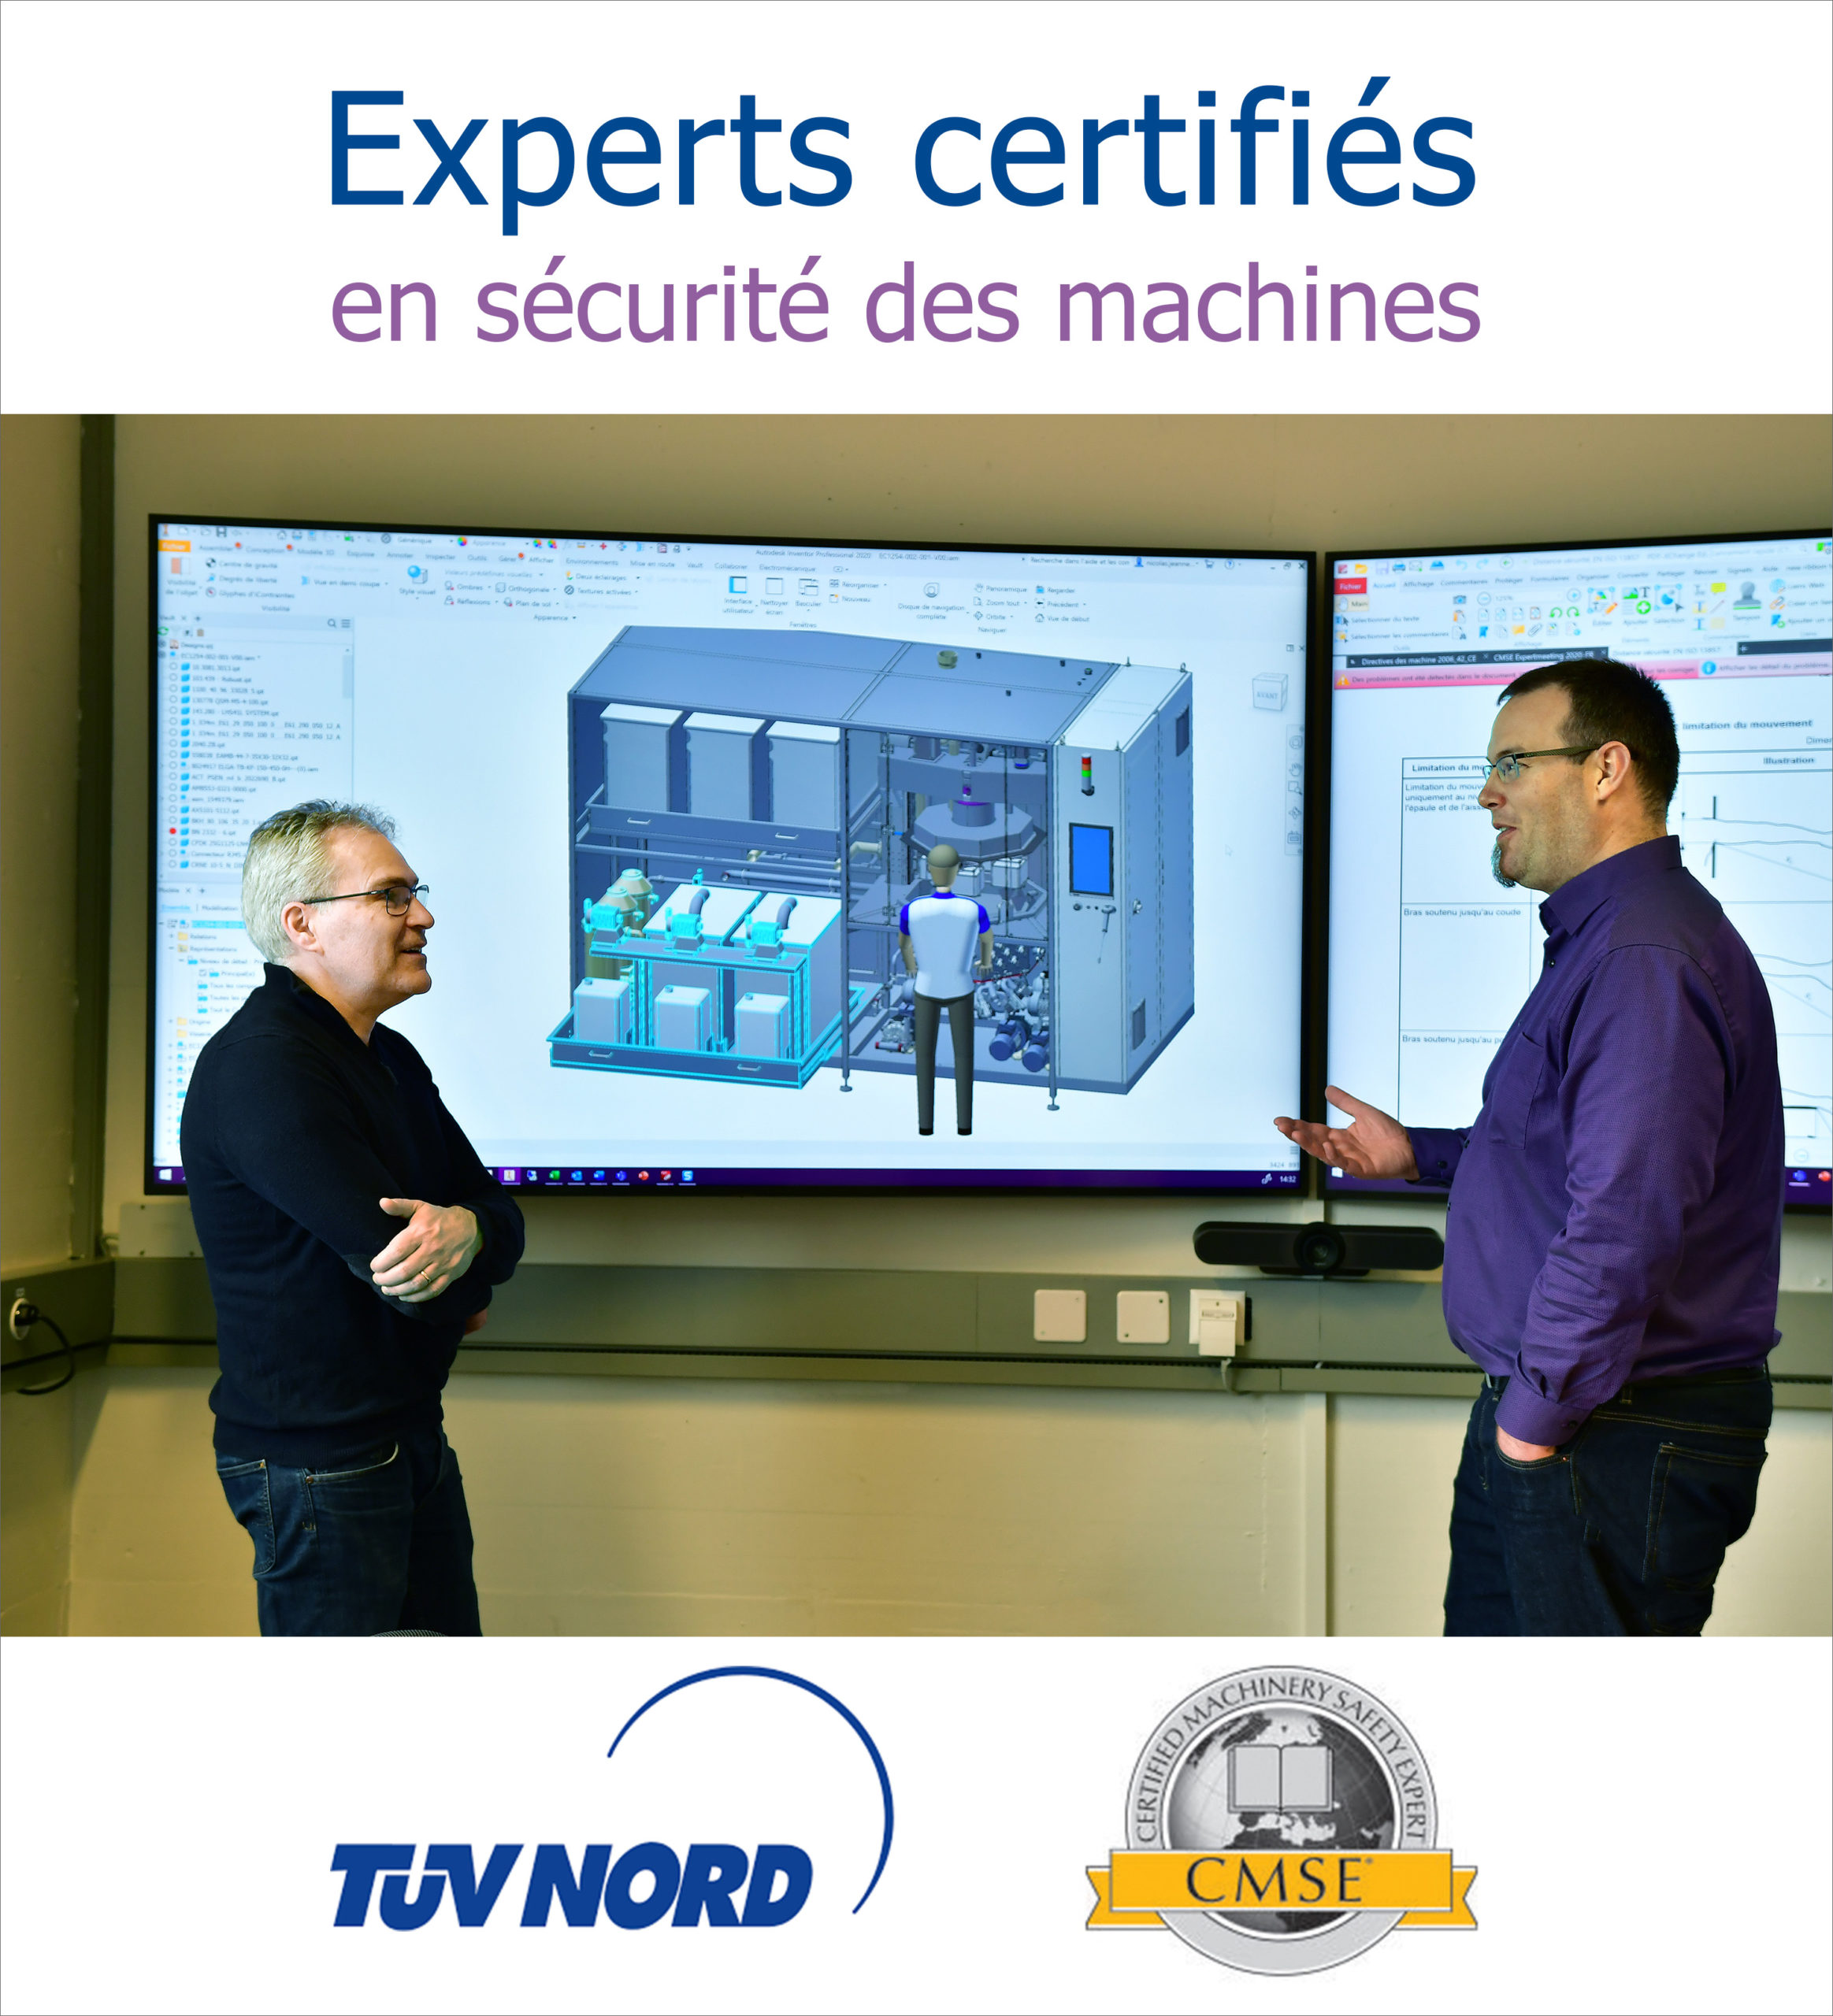 @CMSE® – Certified Machinery Safety Expert